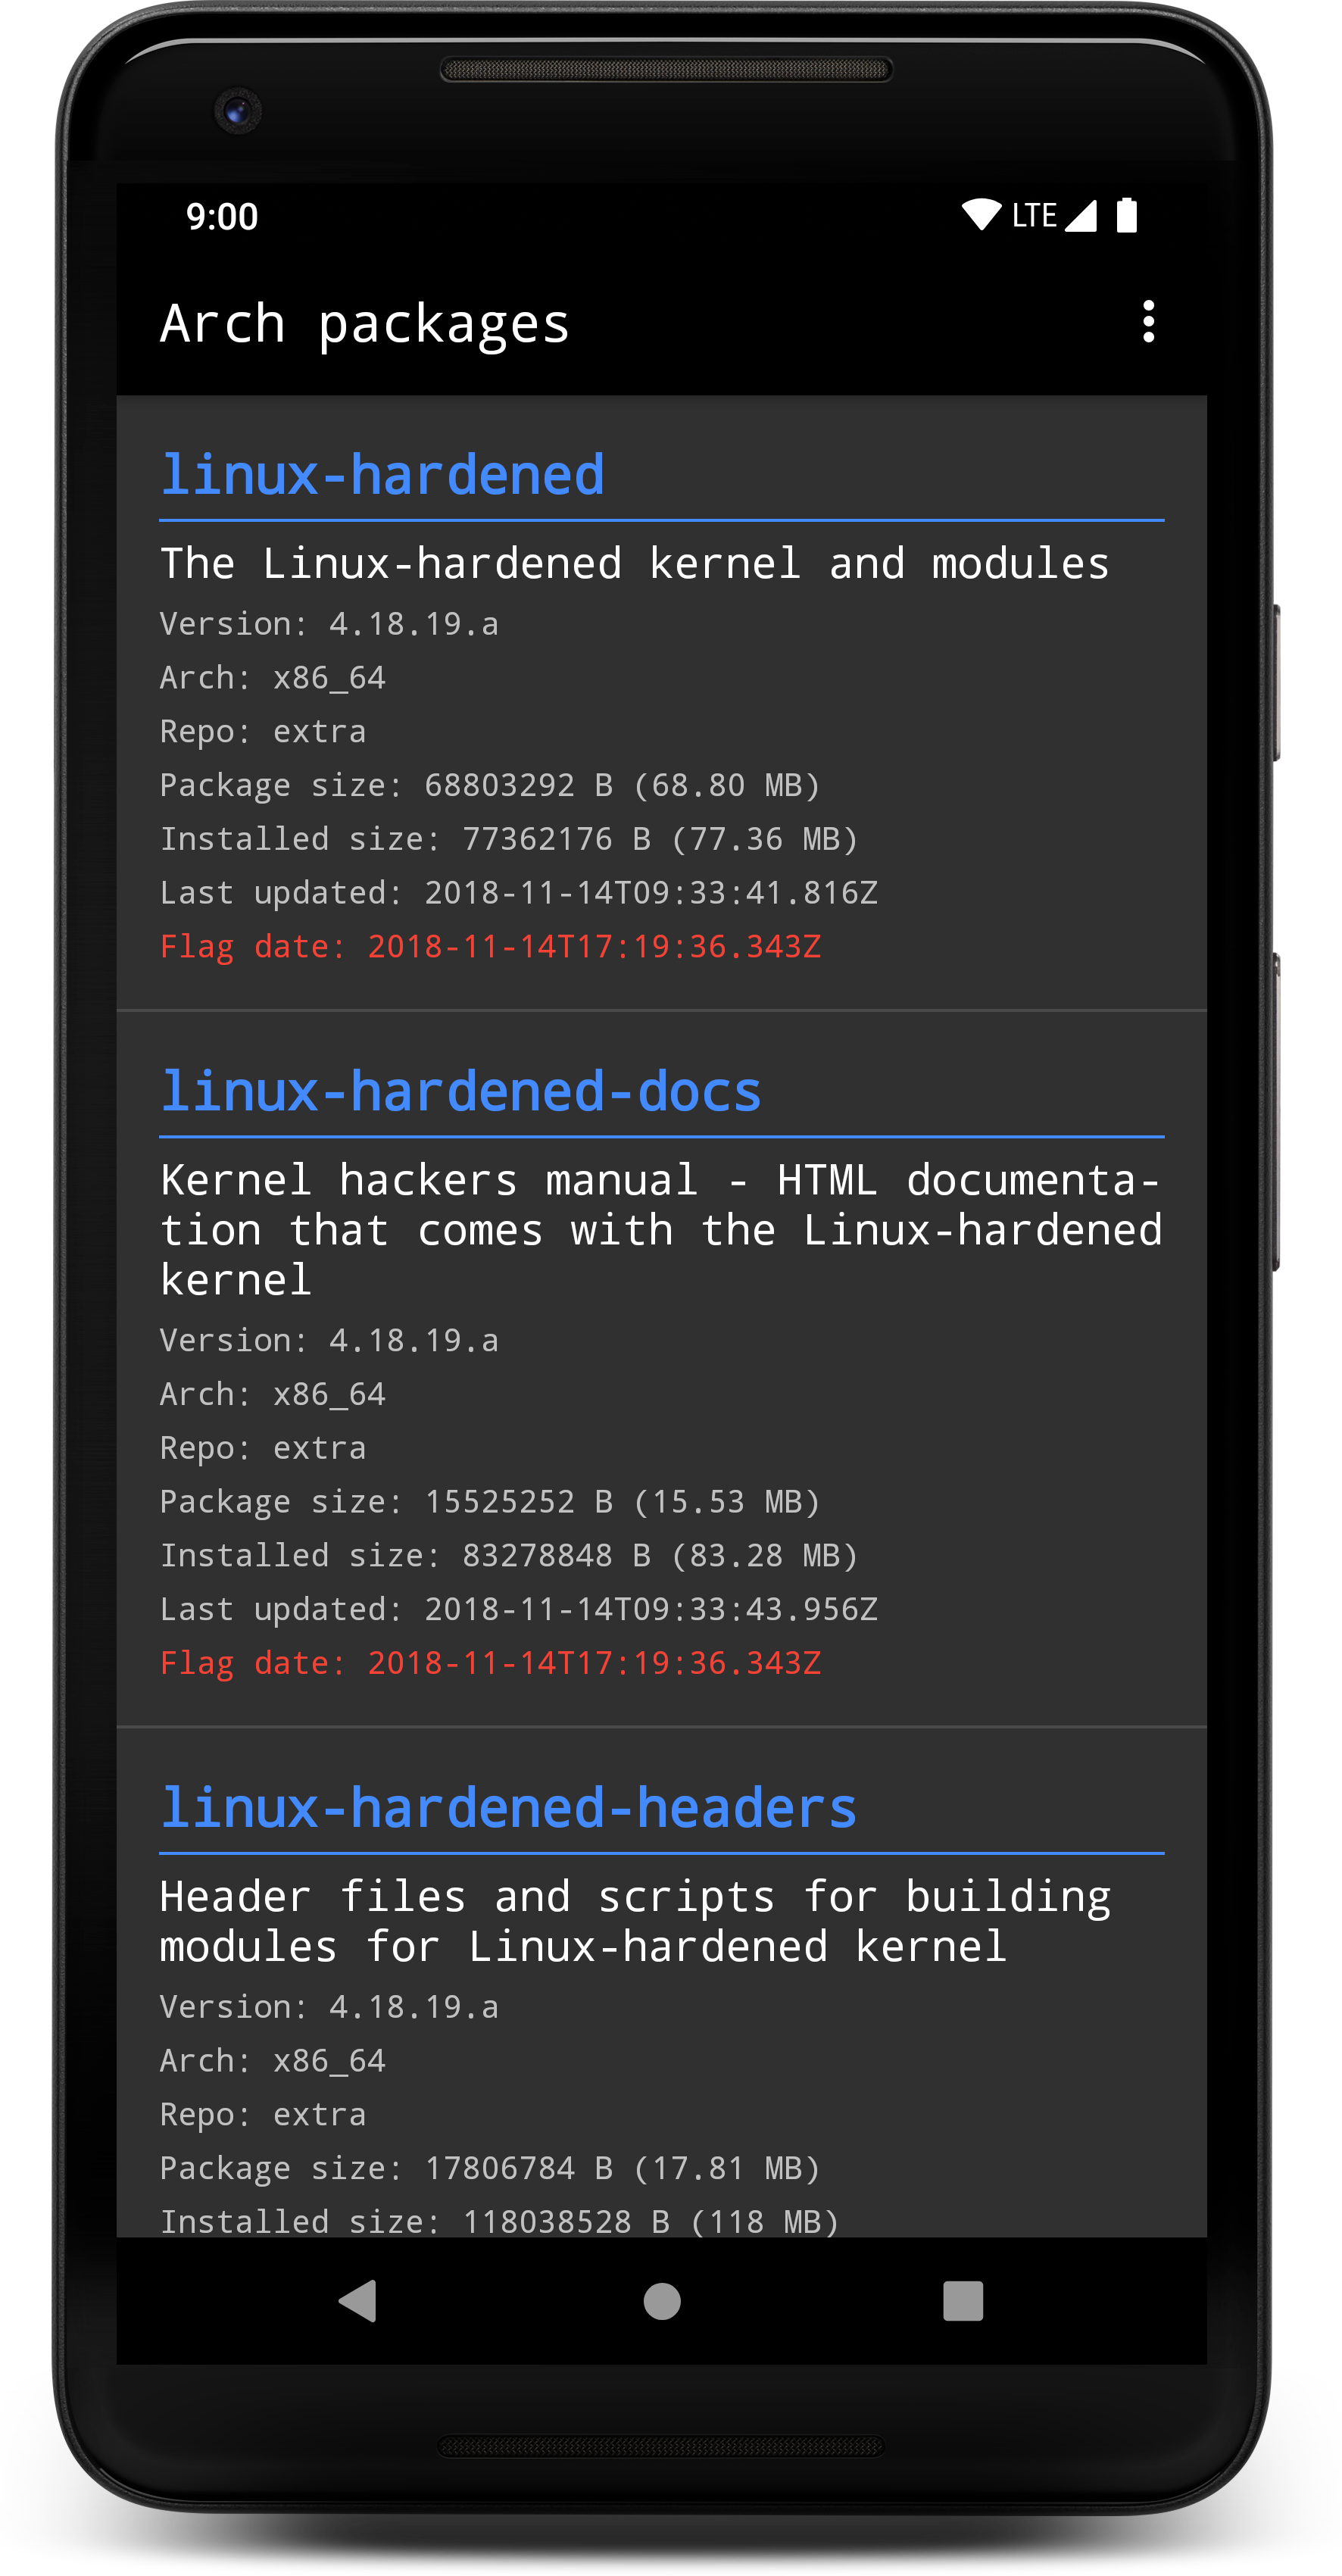 Arch packages, an Android app : archlinux